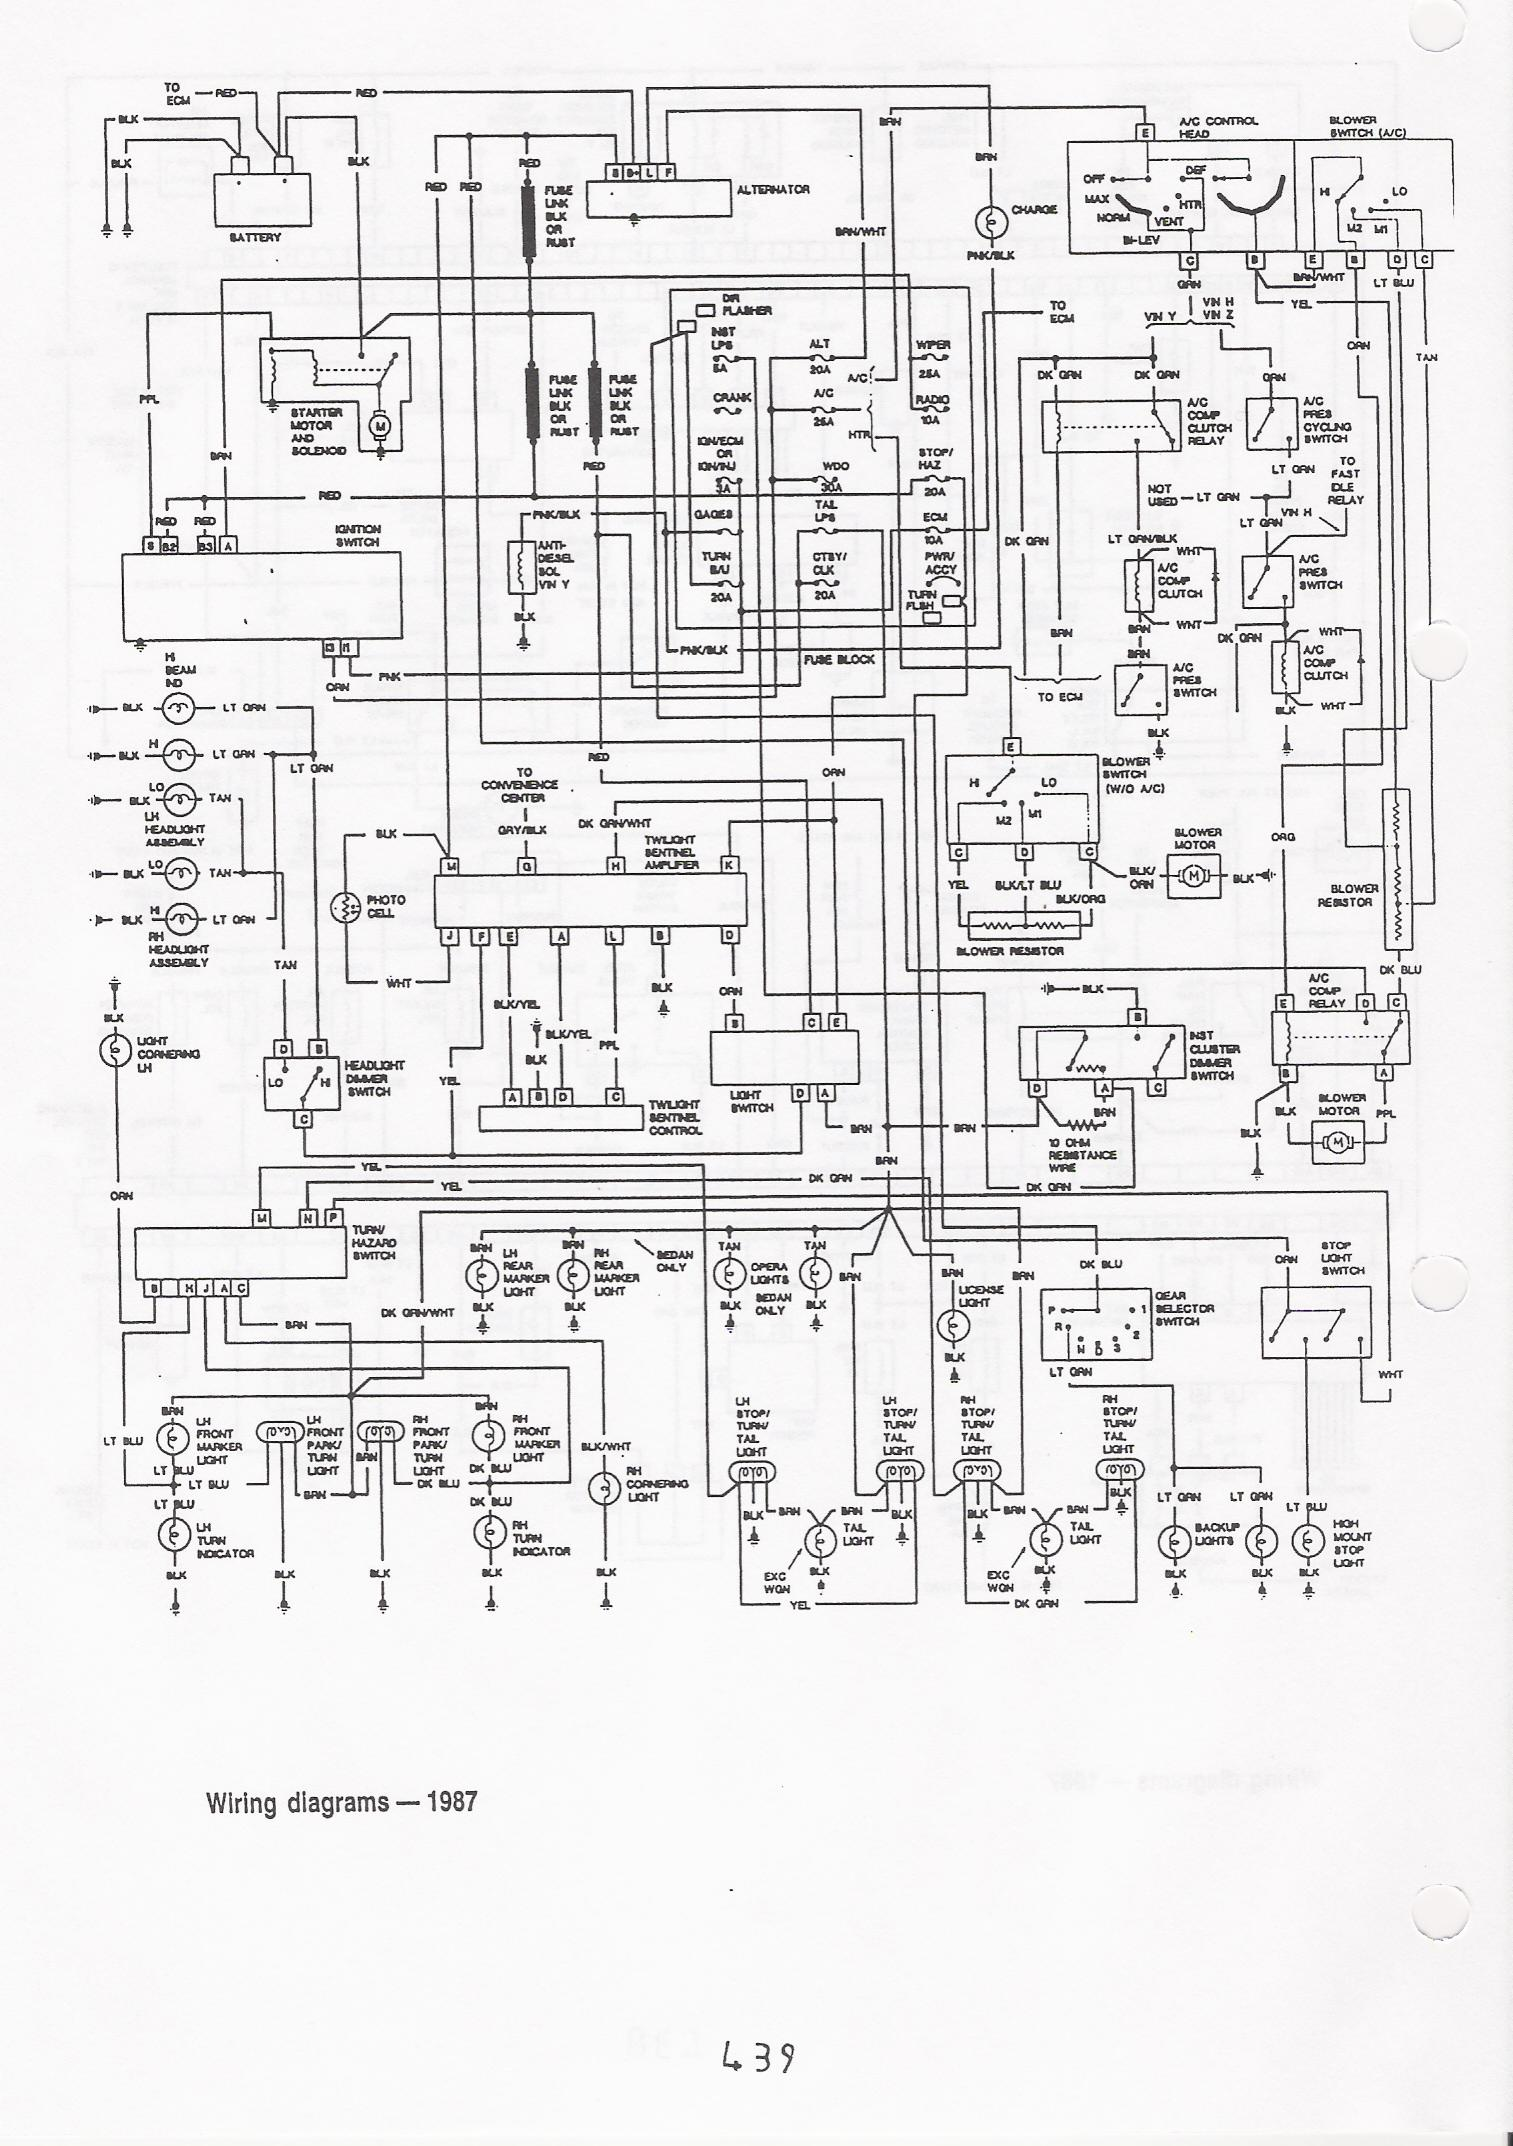 87 Camaro Alternator Wiring Diagram Wiring Library